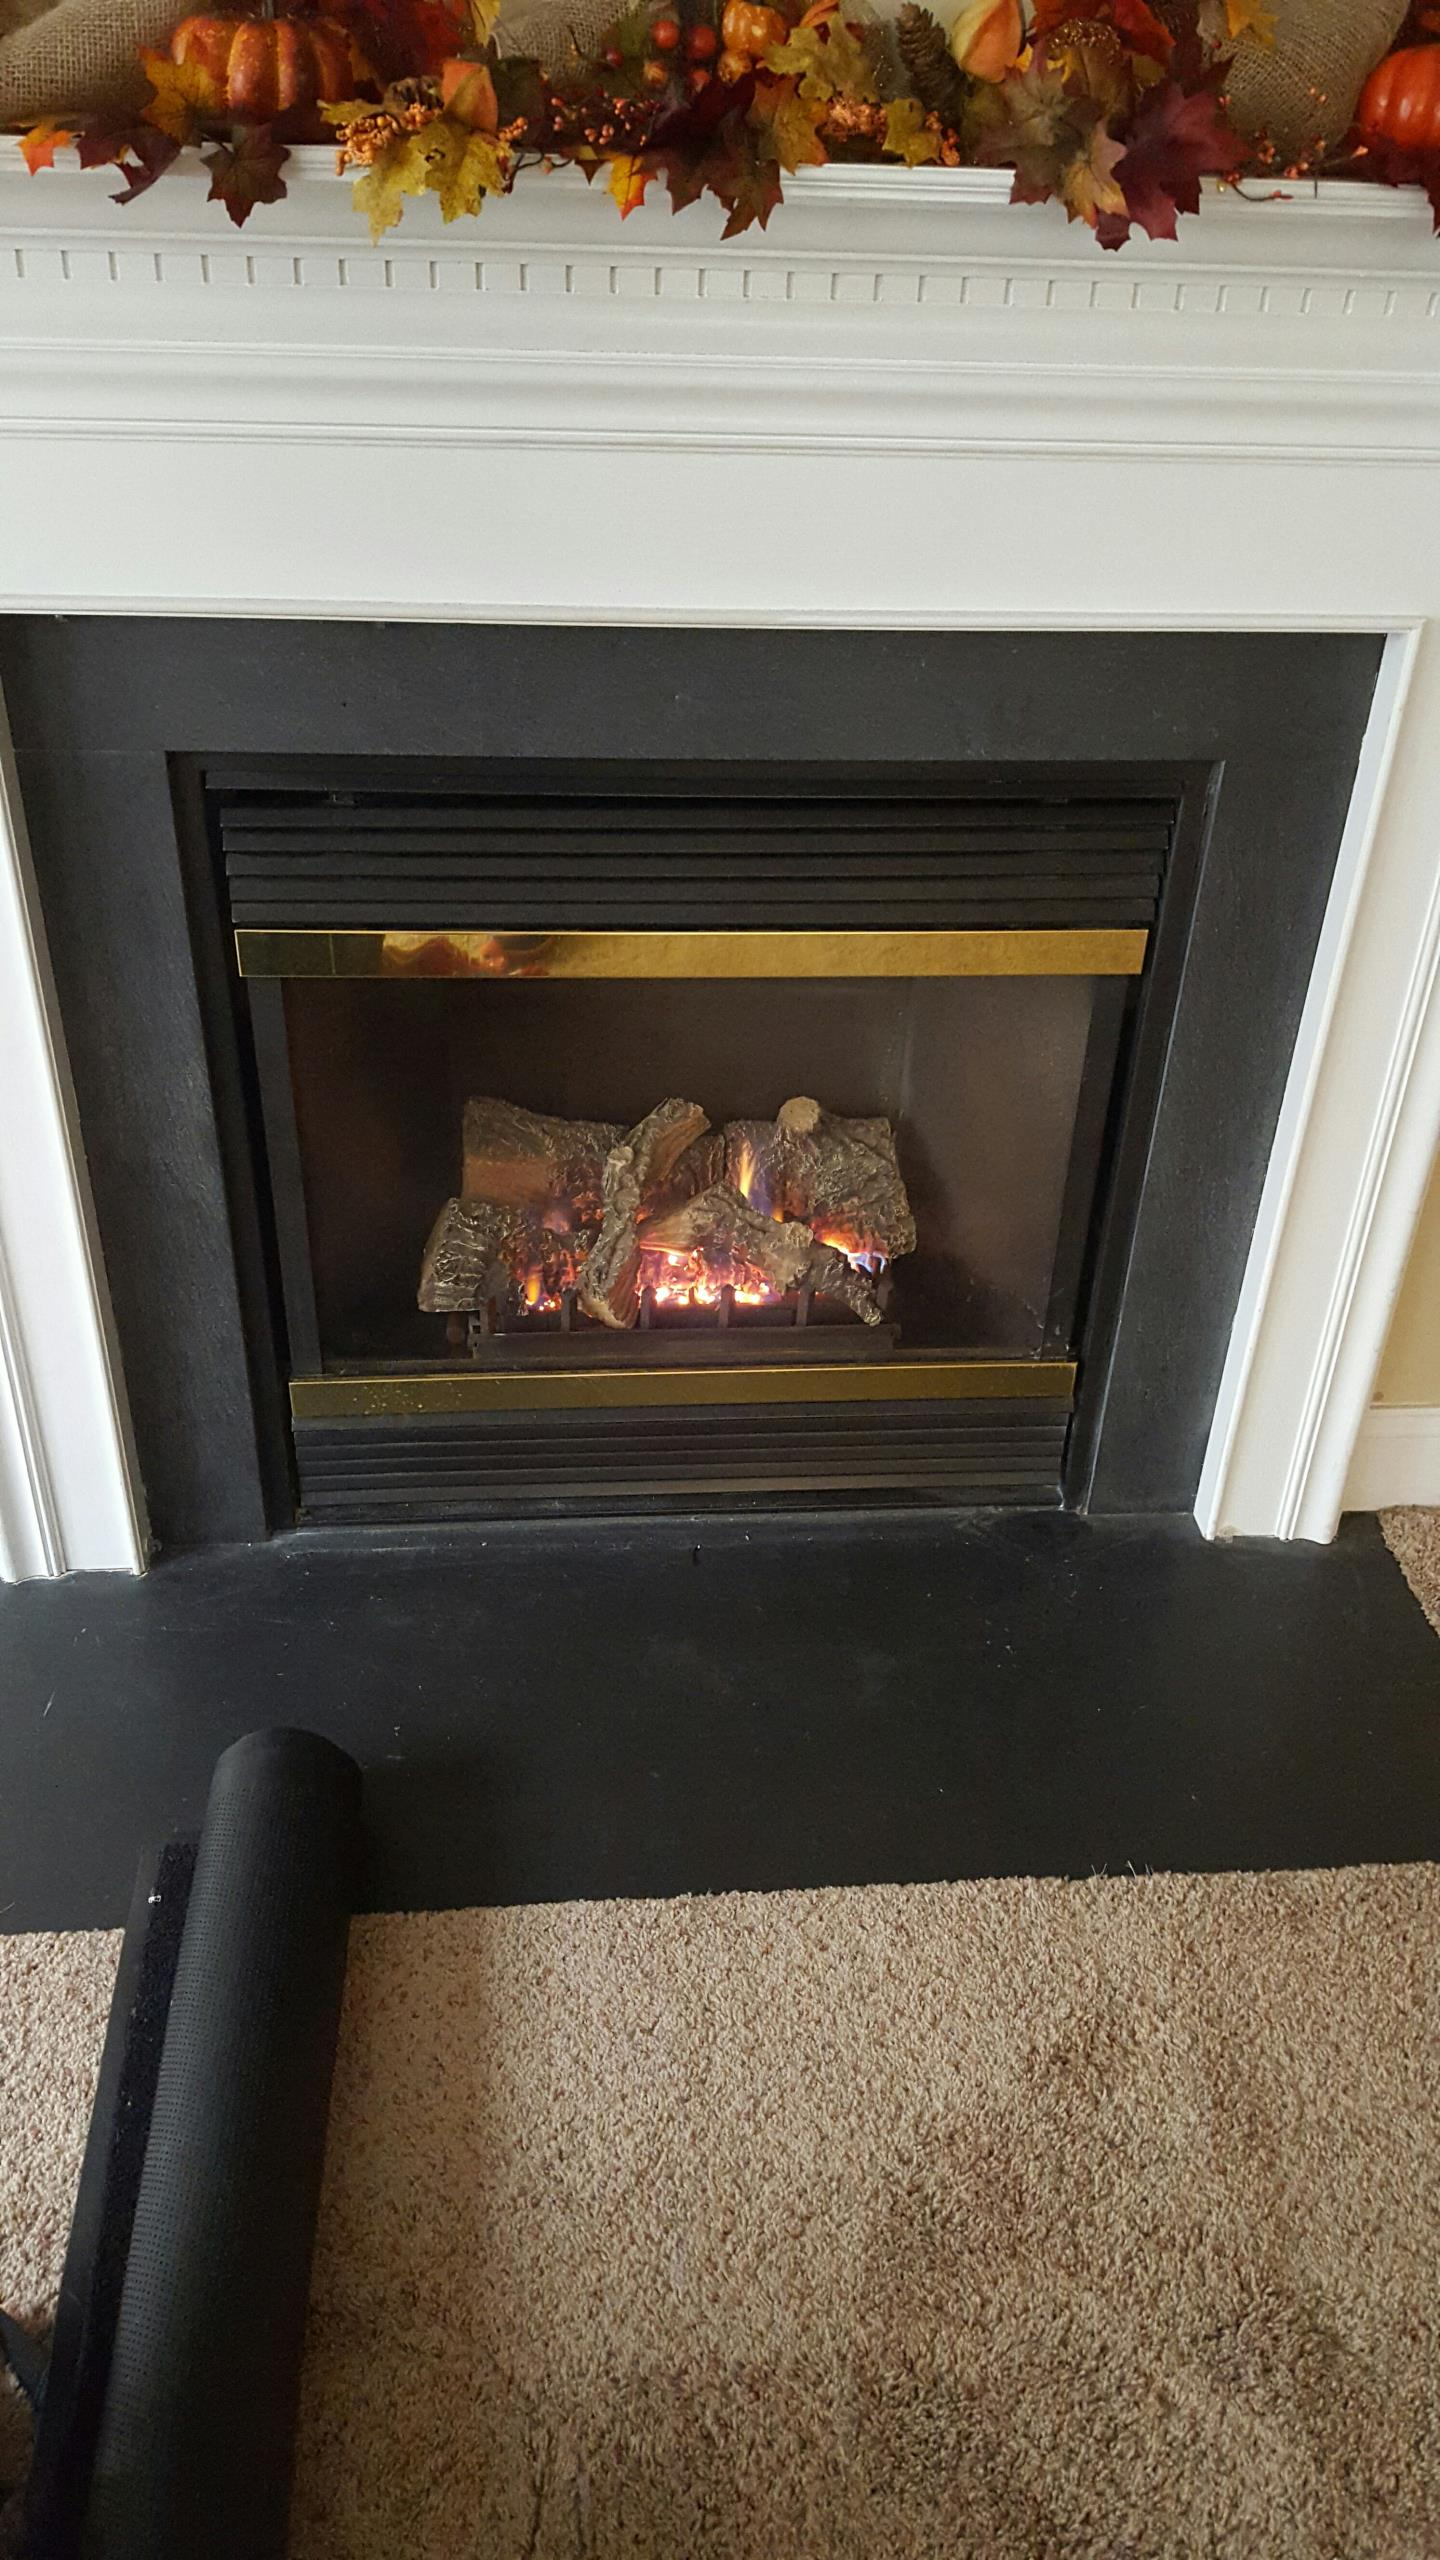 Gambrills, MD - Majestic gas fireplace insert & gas logs installation repair service call Gambrills Maryland